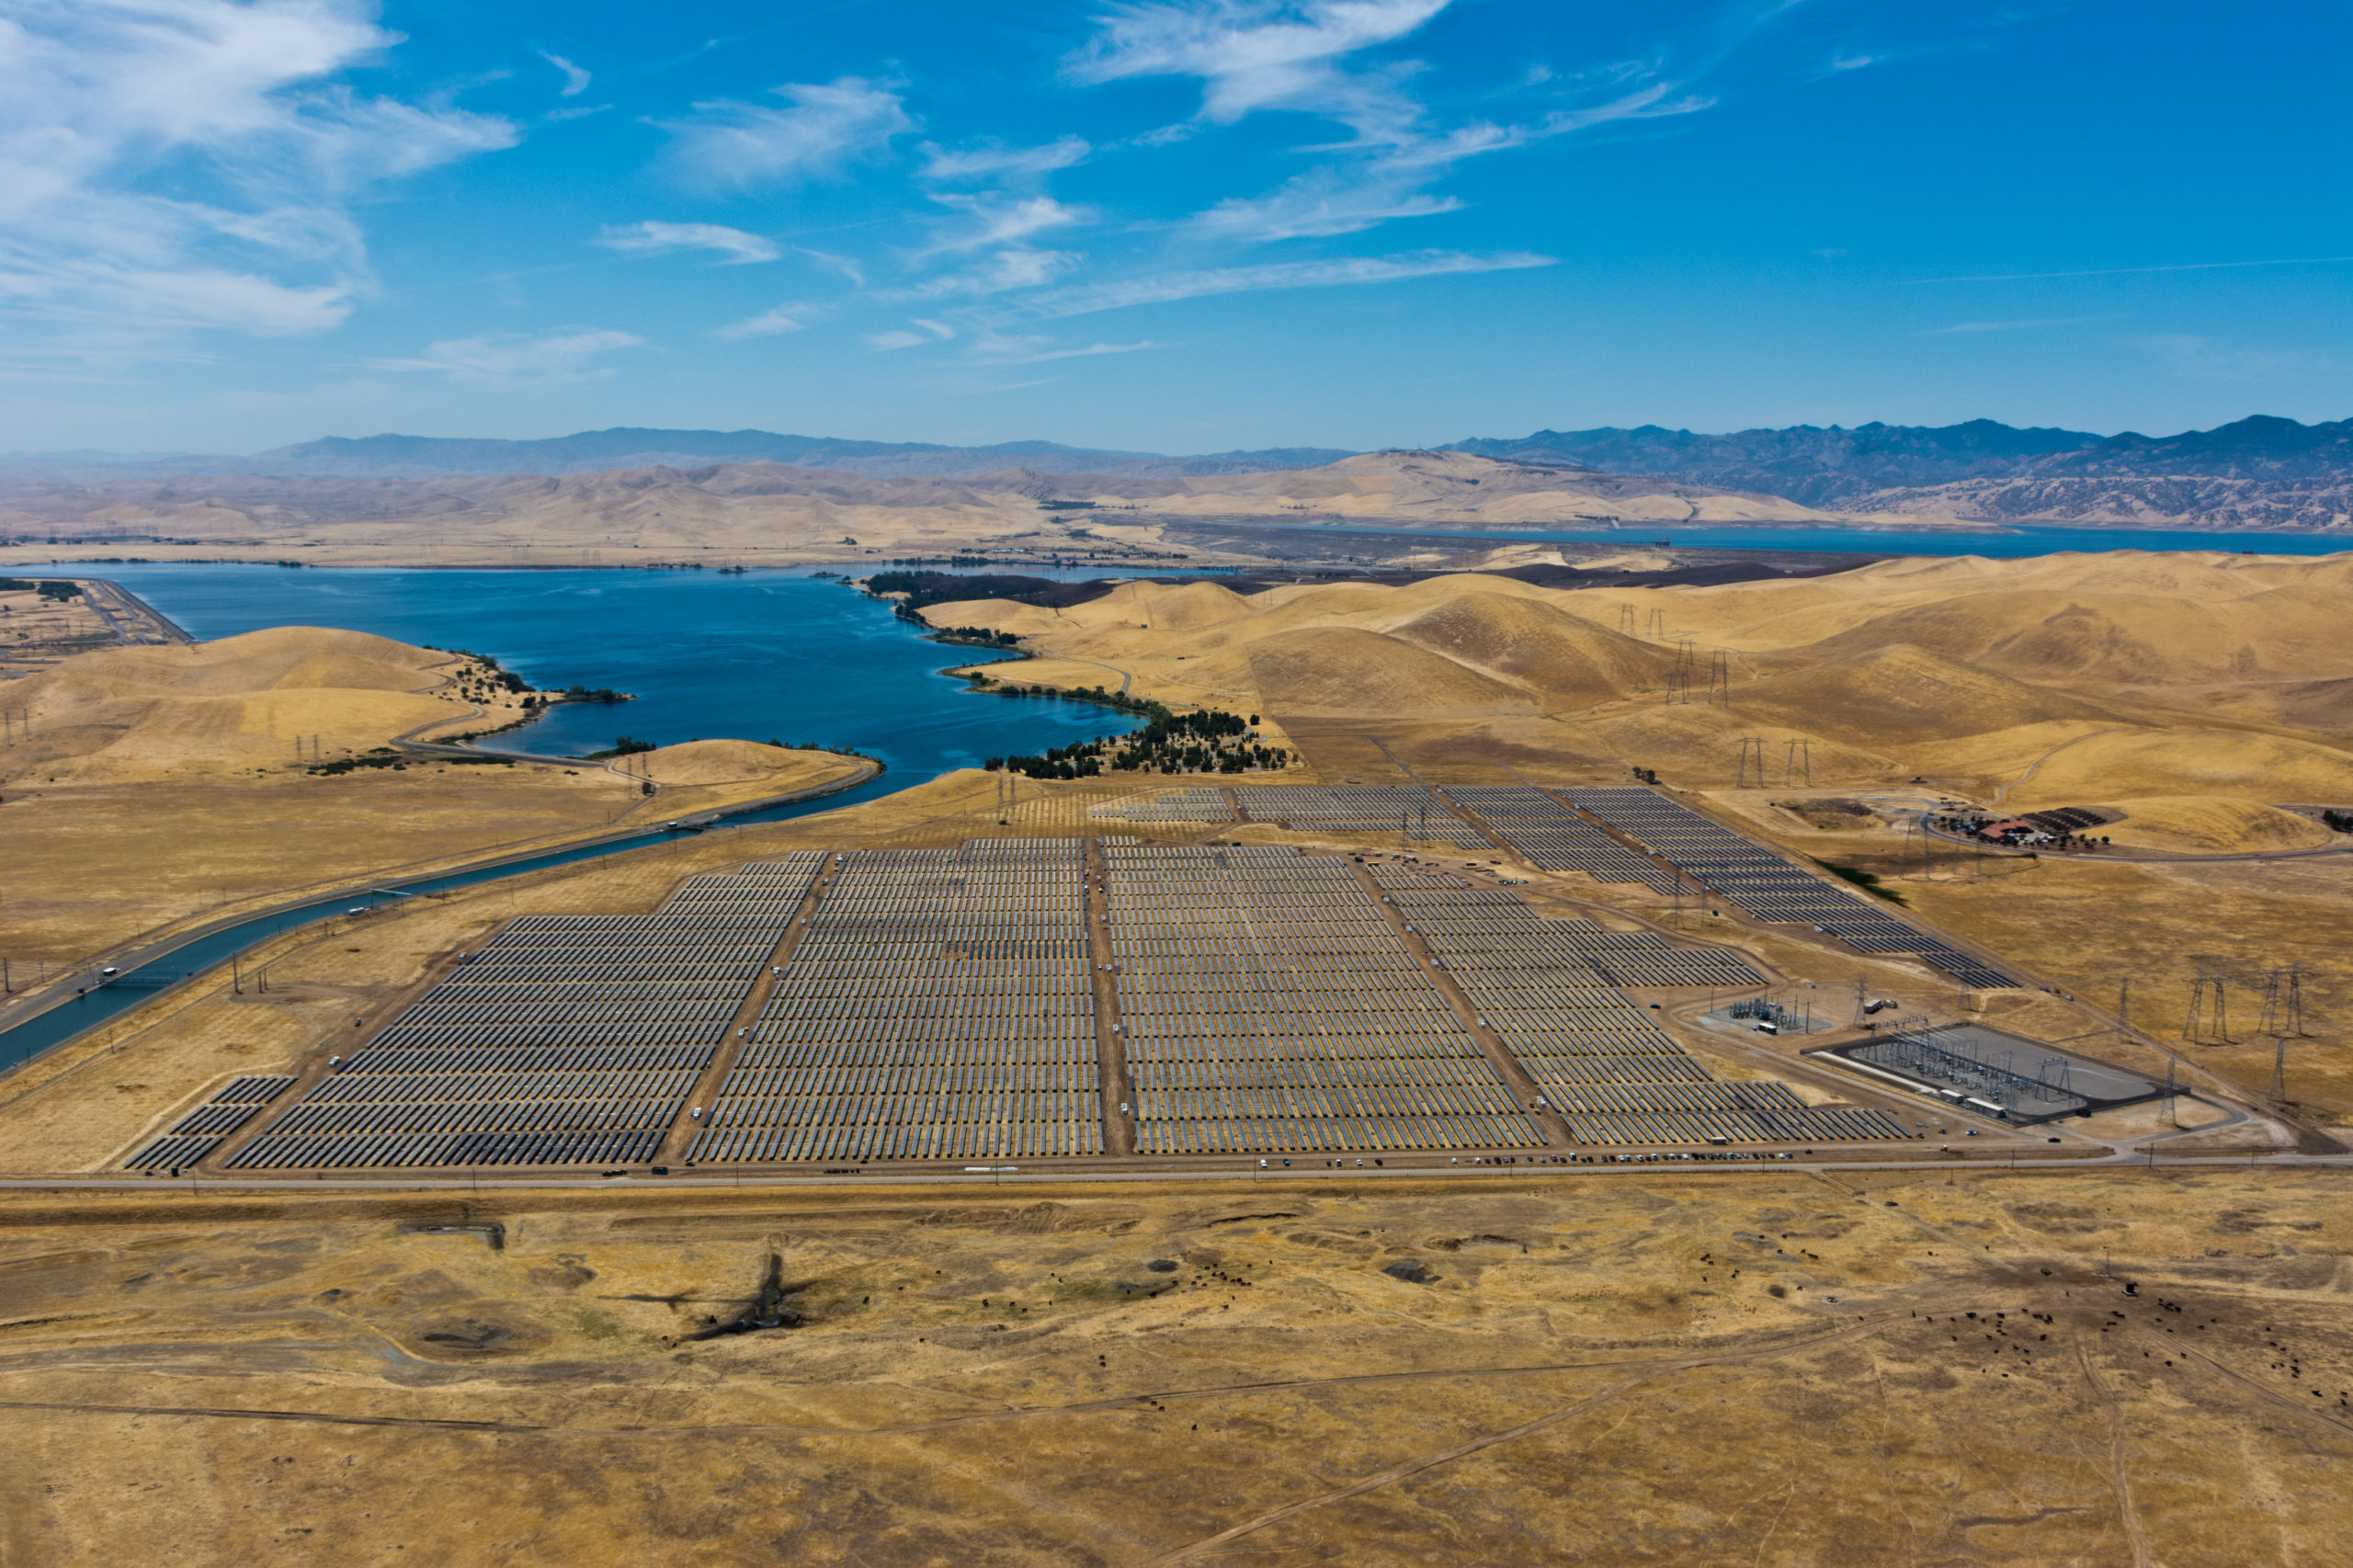 In February, Capital Dynamics announced plans to own and operate a planned 1GW PV power plant in Nevada. Credit: 8Point3 Energy Partners